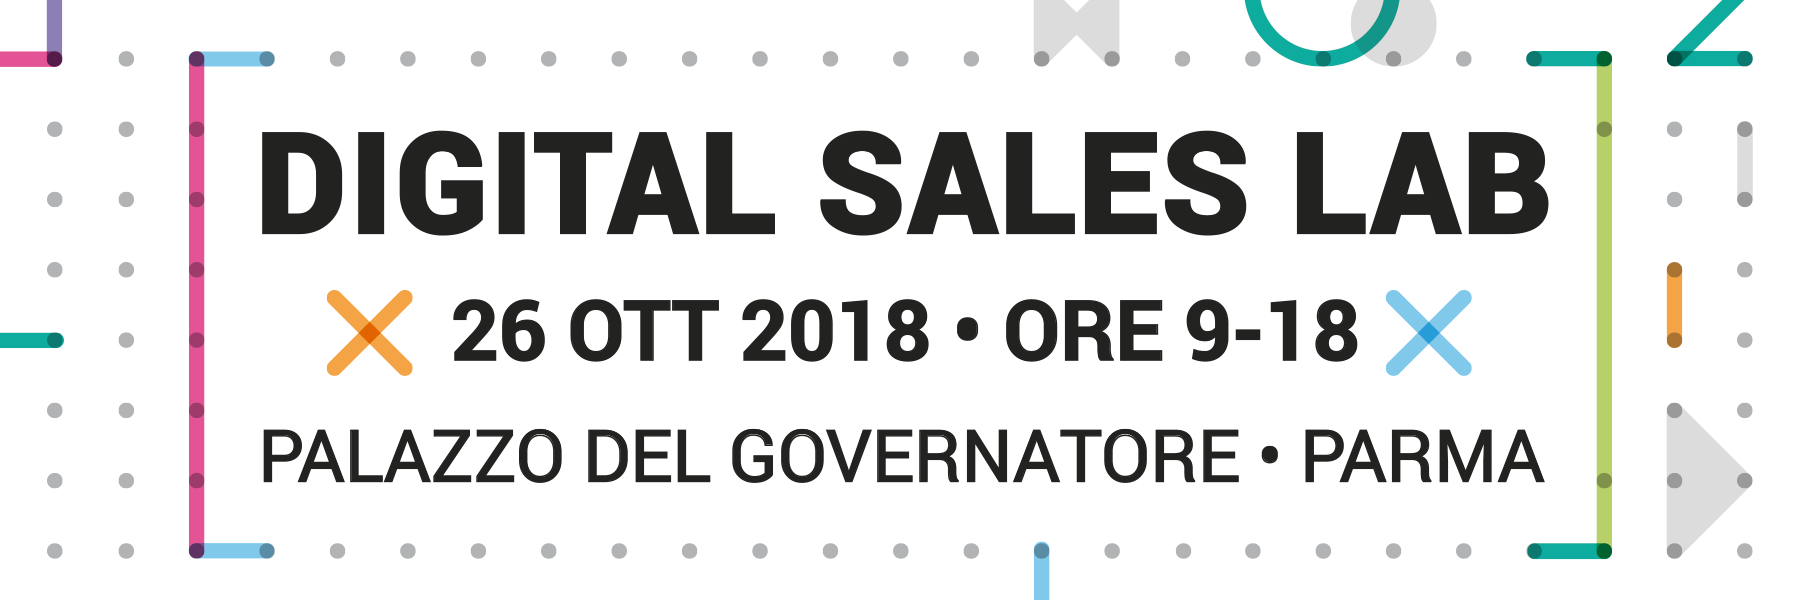 Digital sales lab 2018